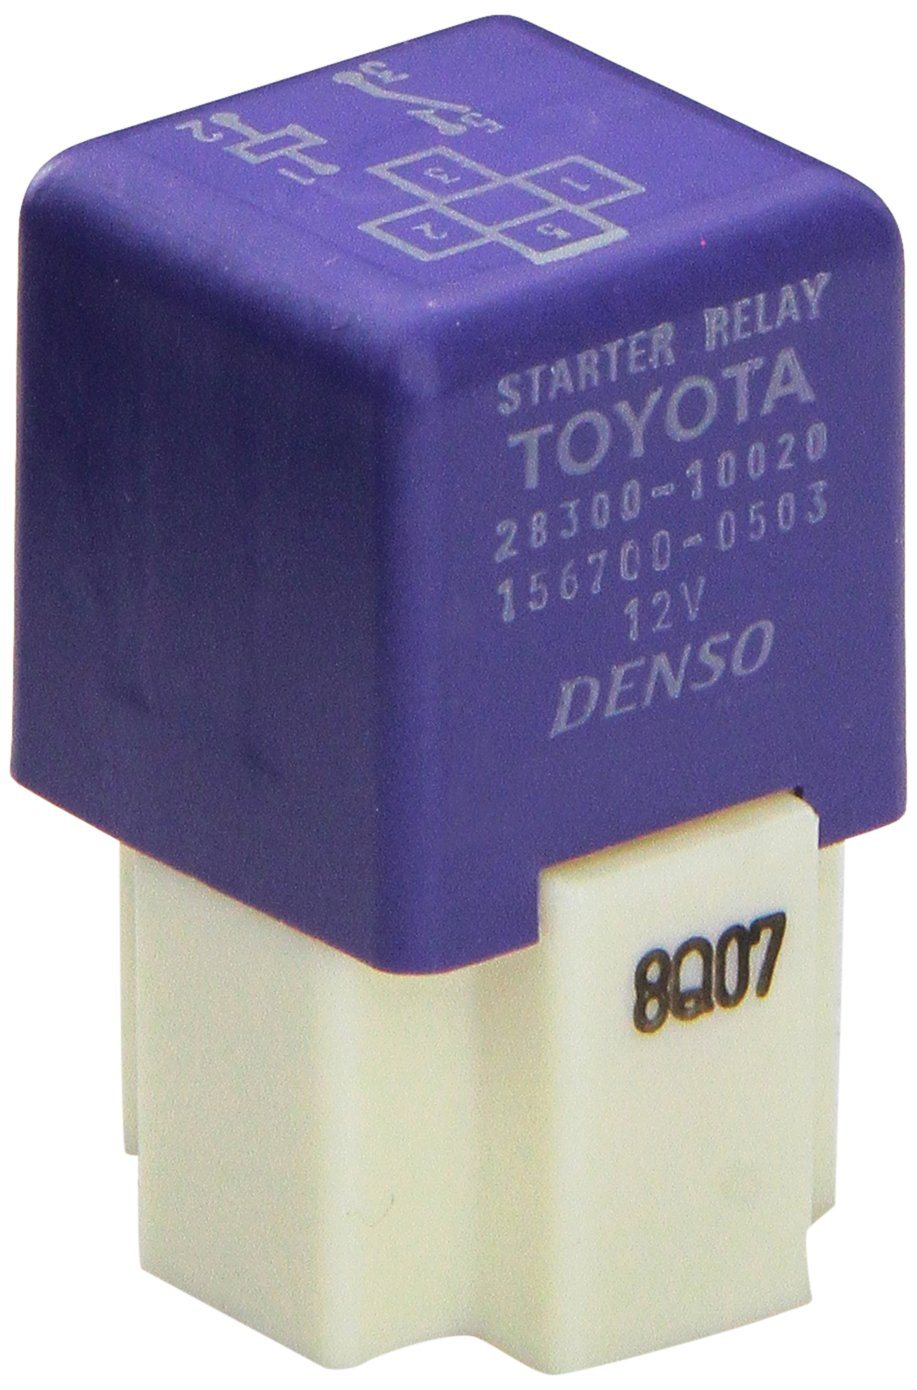 Genuine Toyota (28300-10020) Starter Relay Assembly